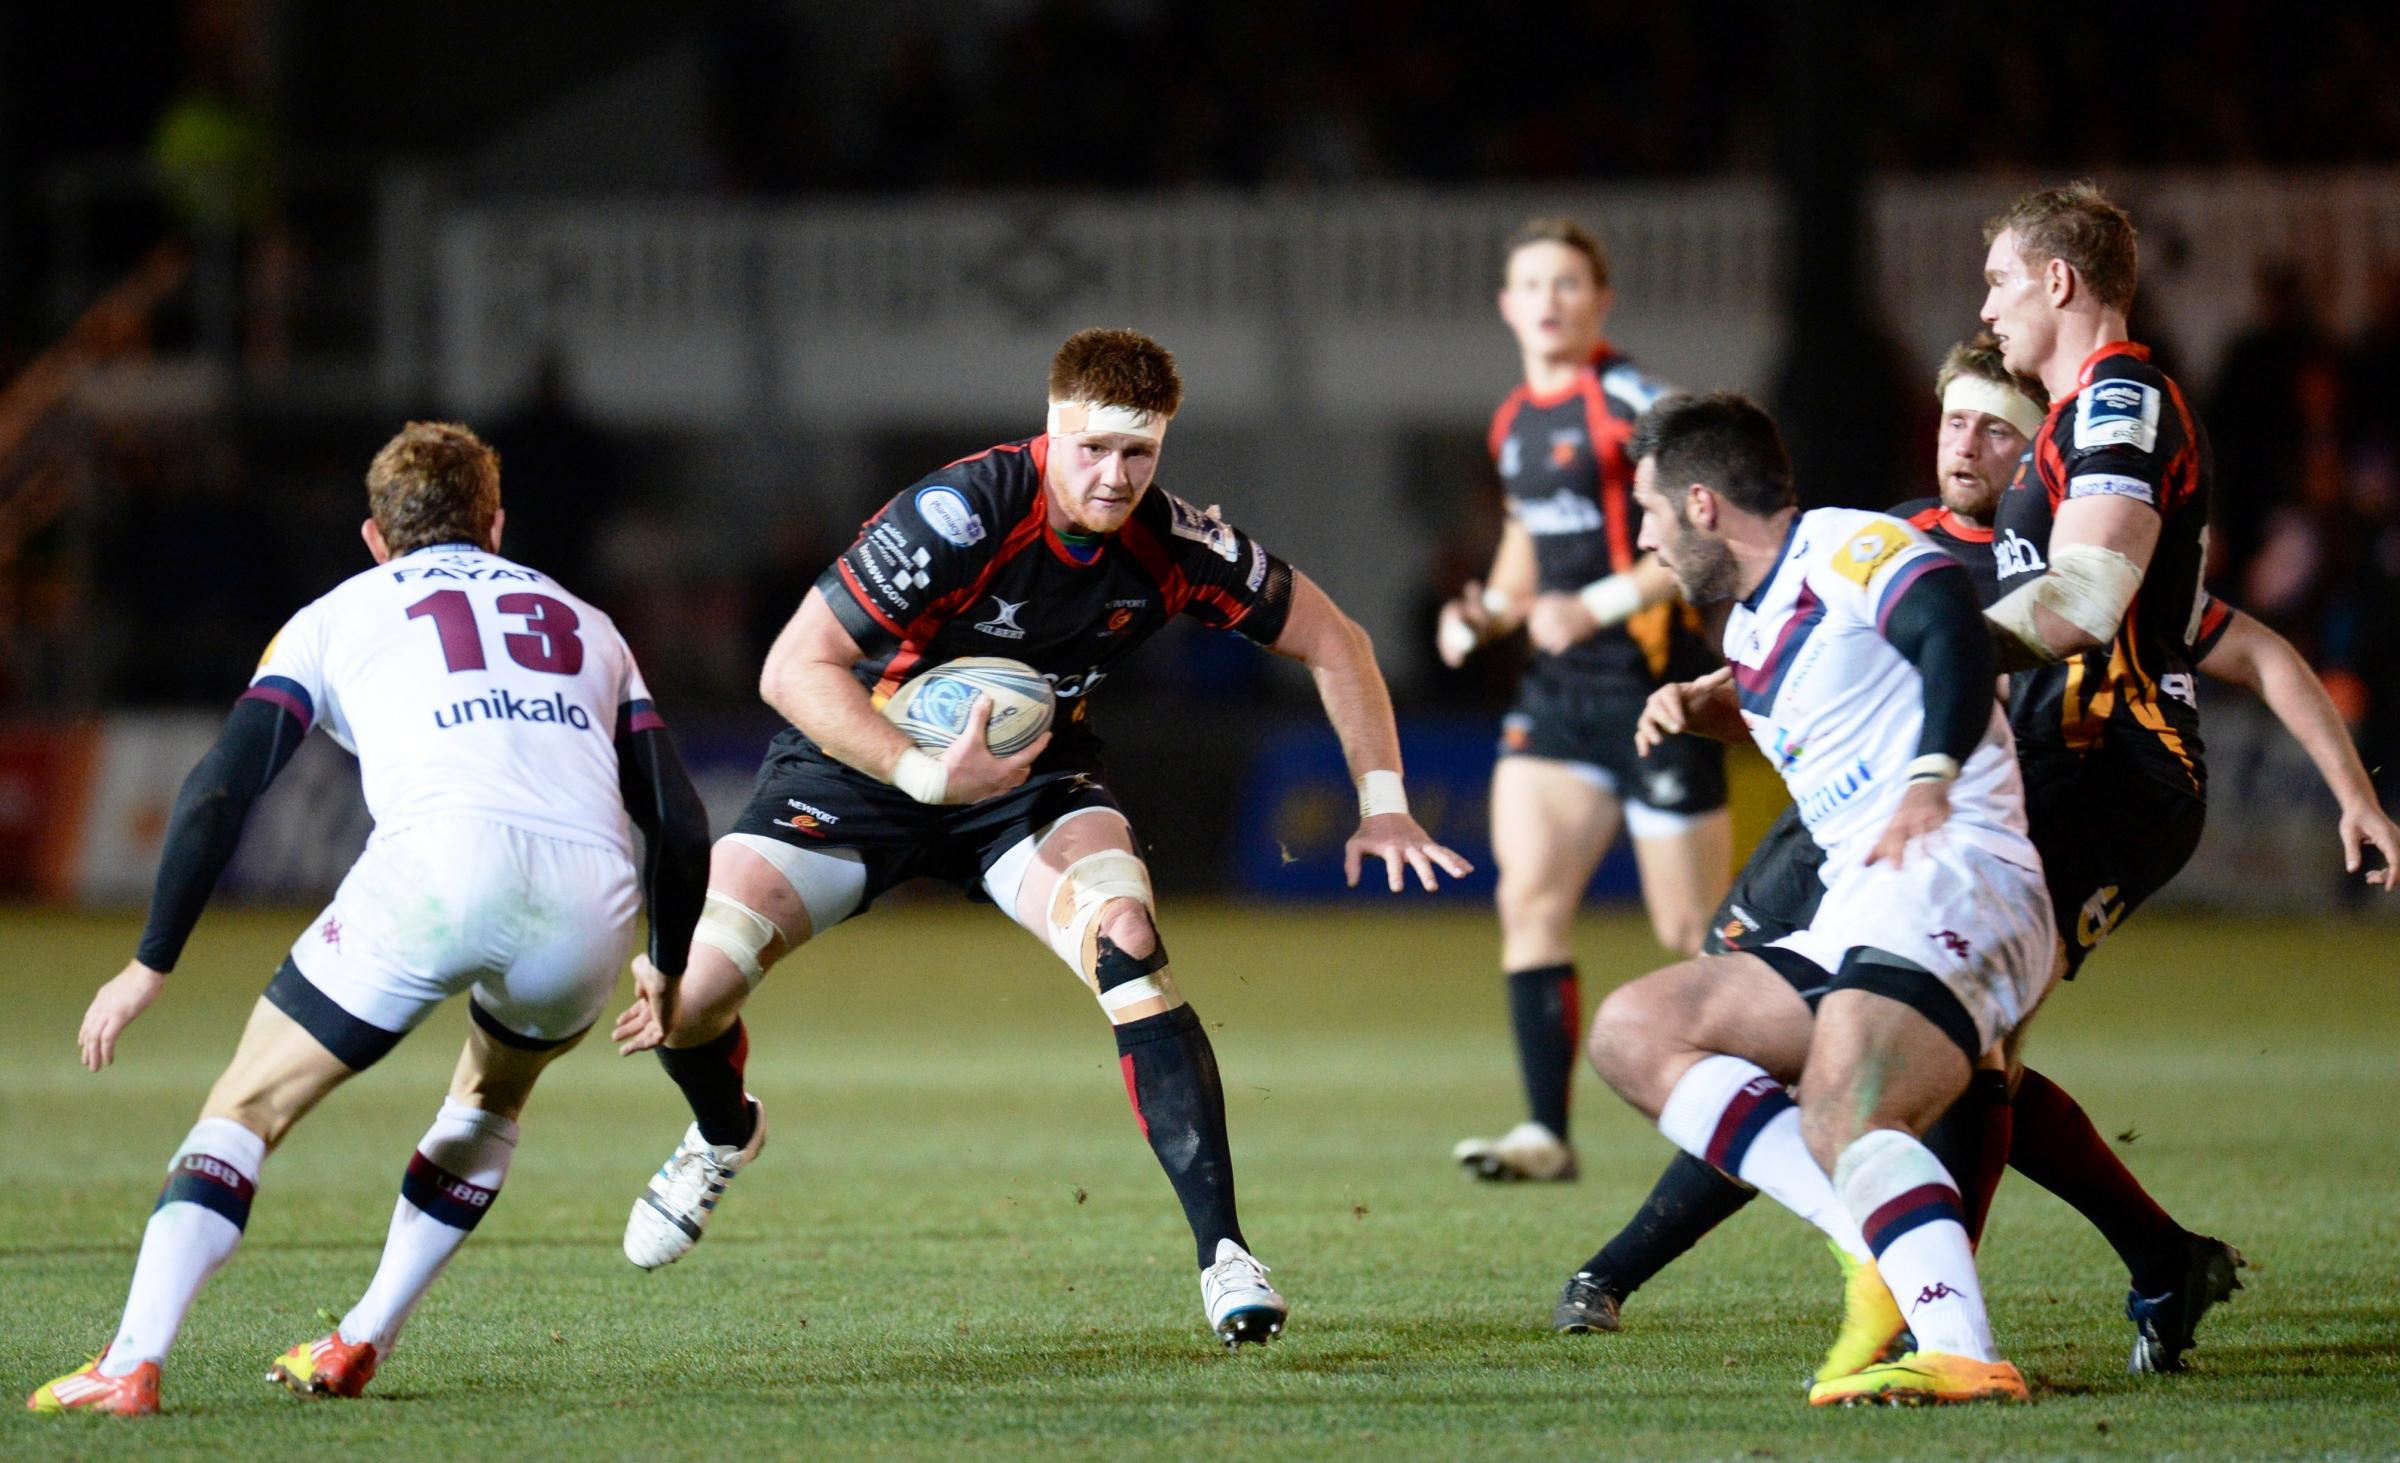 Coombs demands Dragons finish with a flourish